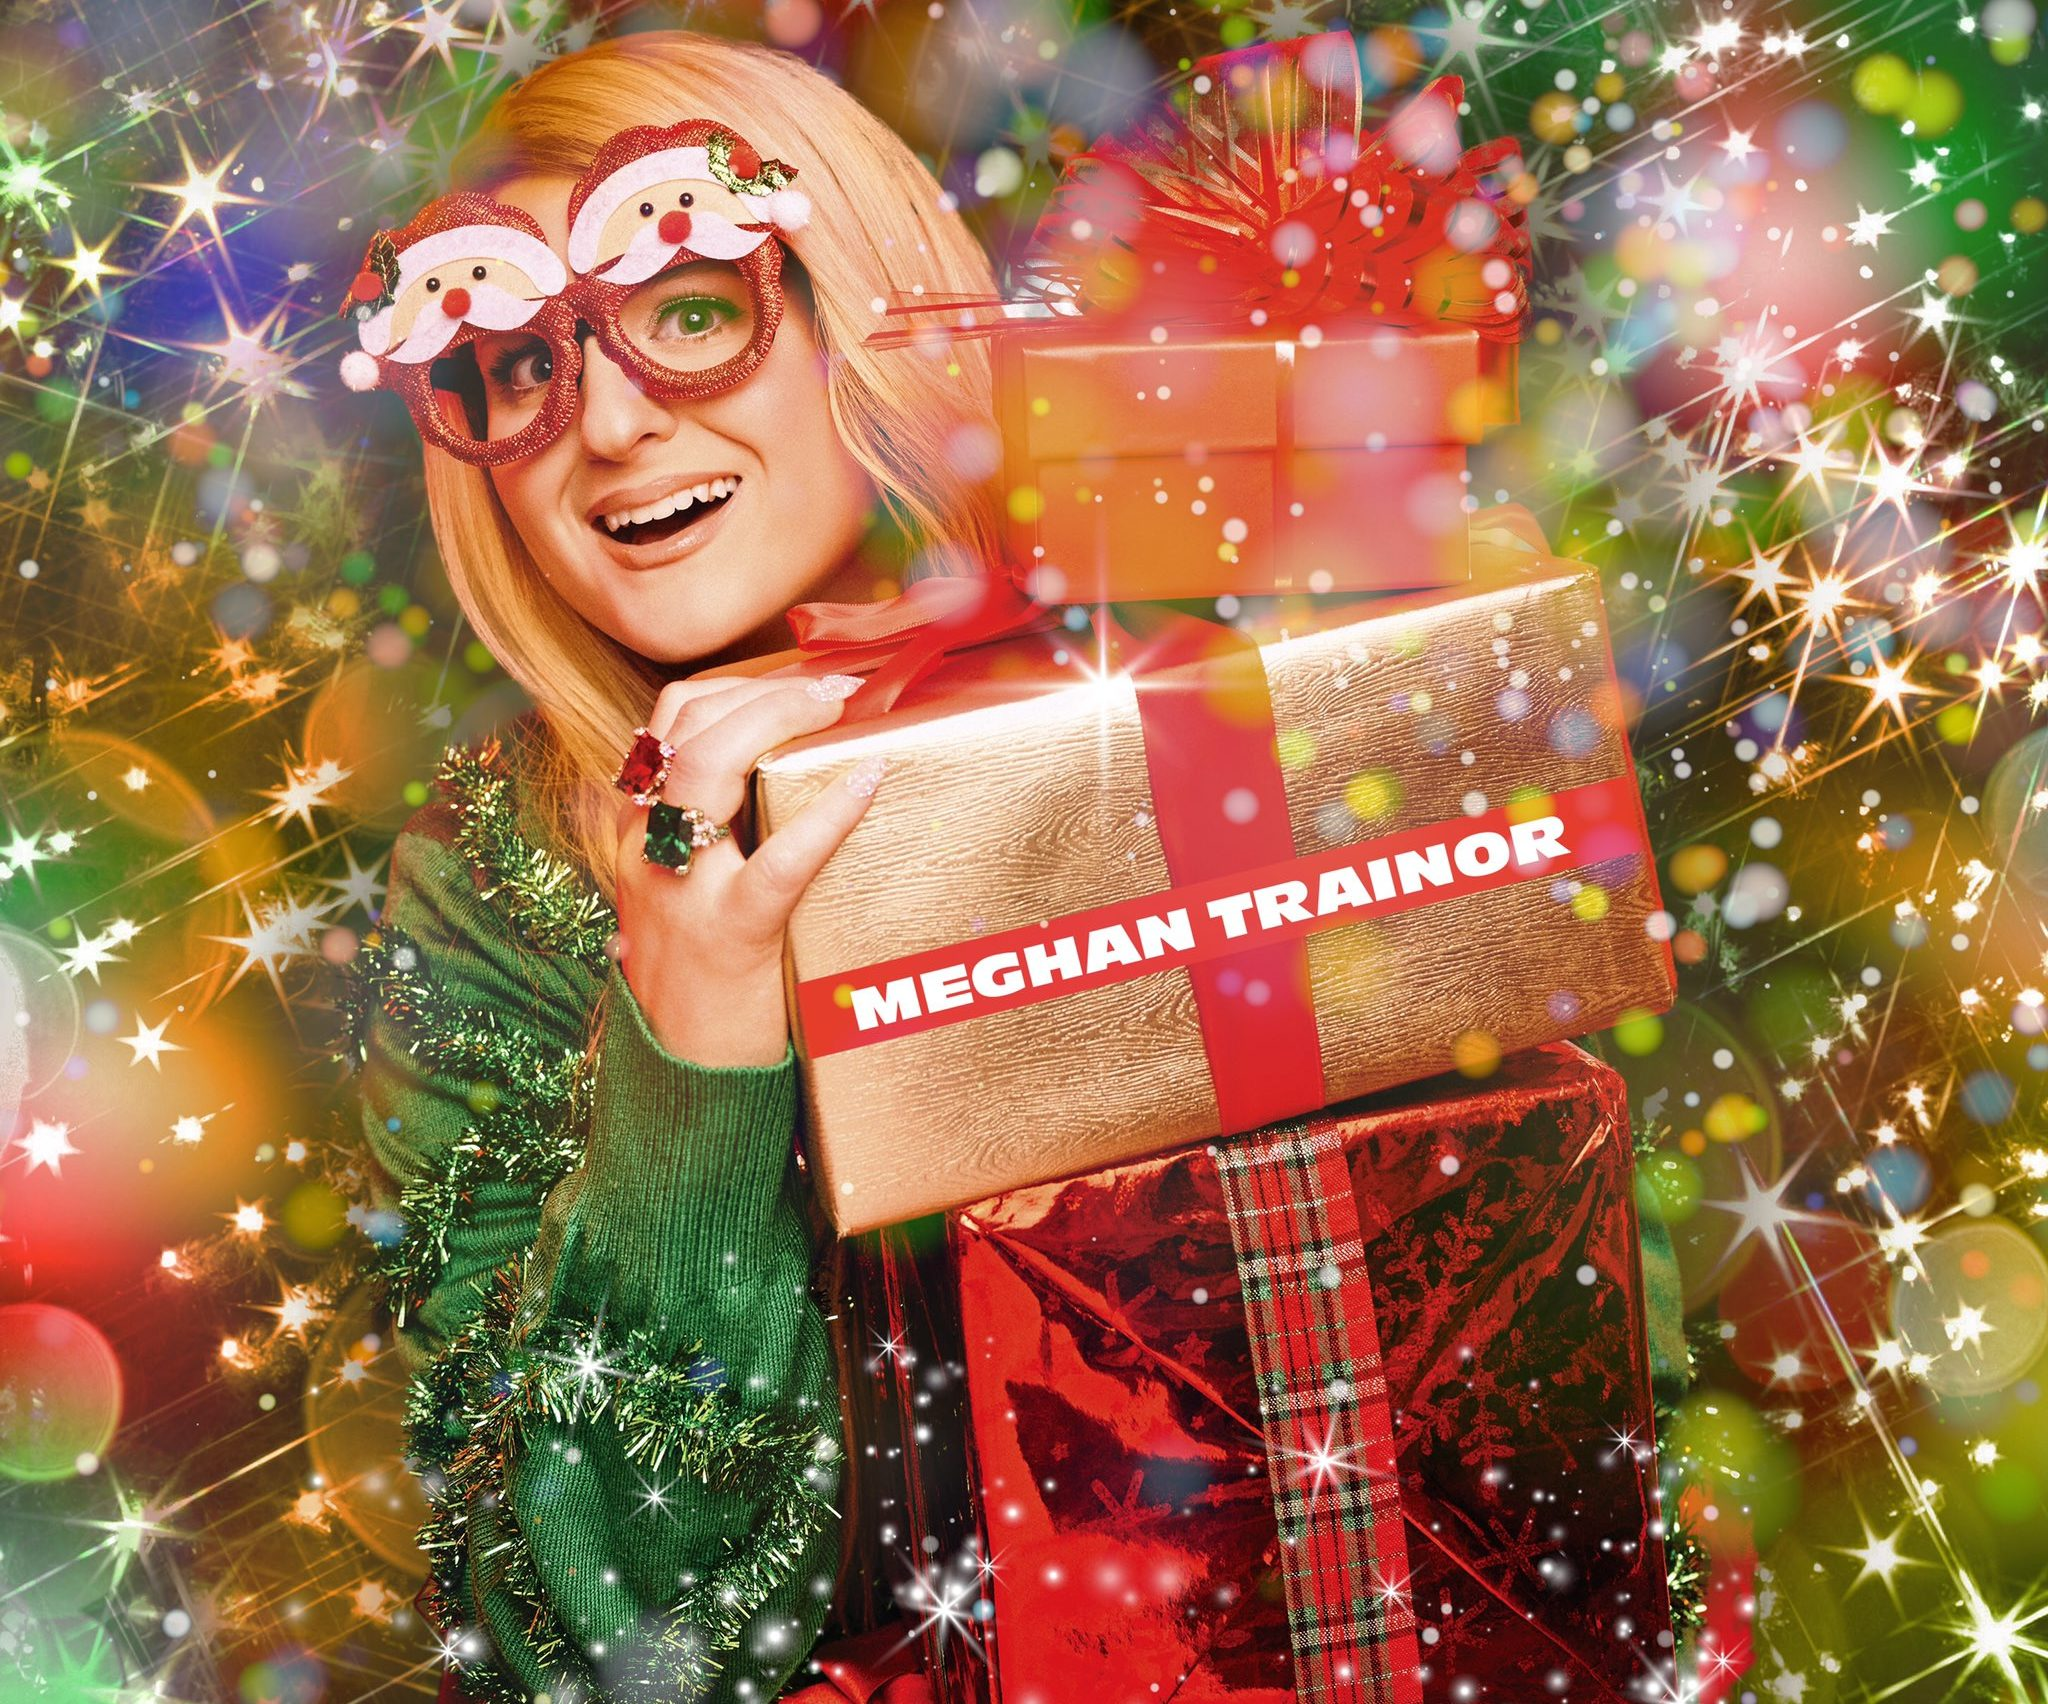 Meghan Trainor A Very Trainor Christmas 1 e1604045899767 - Meghan Trainor - A Very Trainor Christmas (Album)